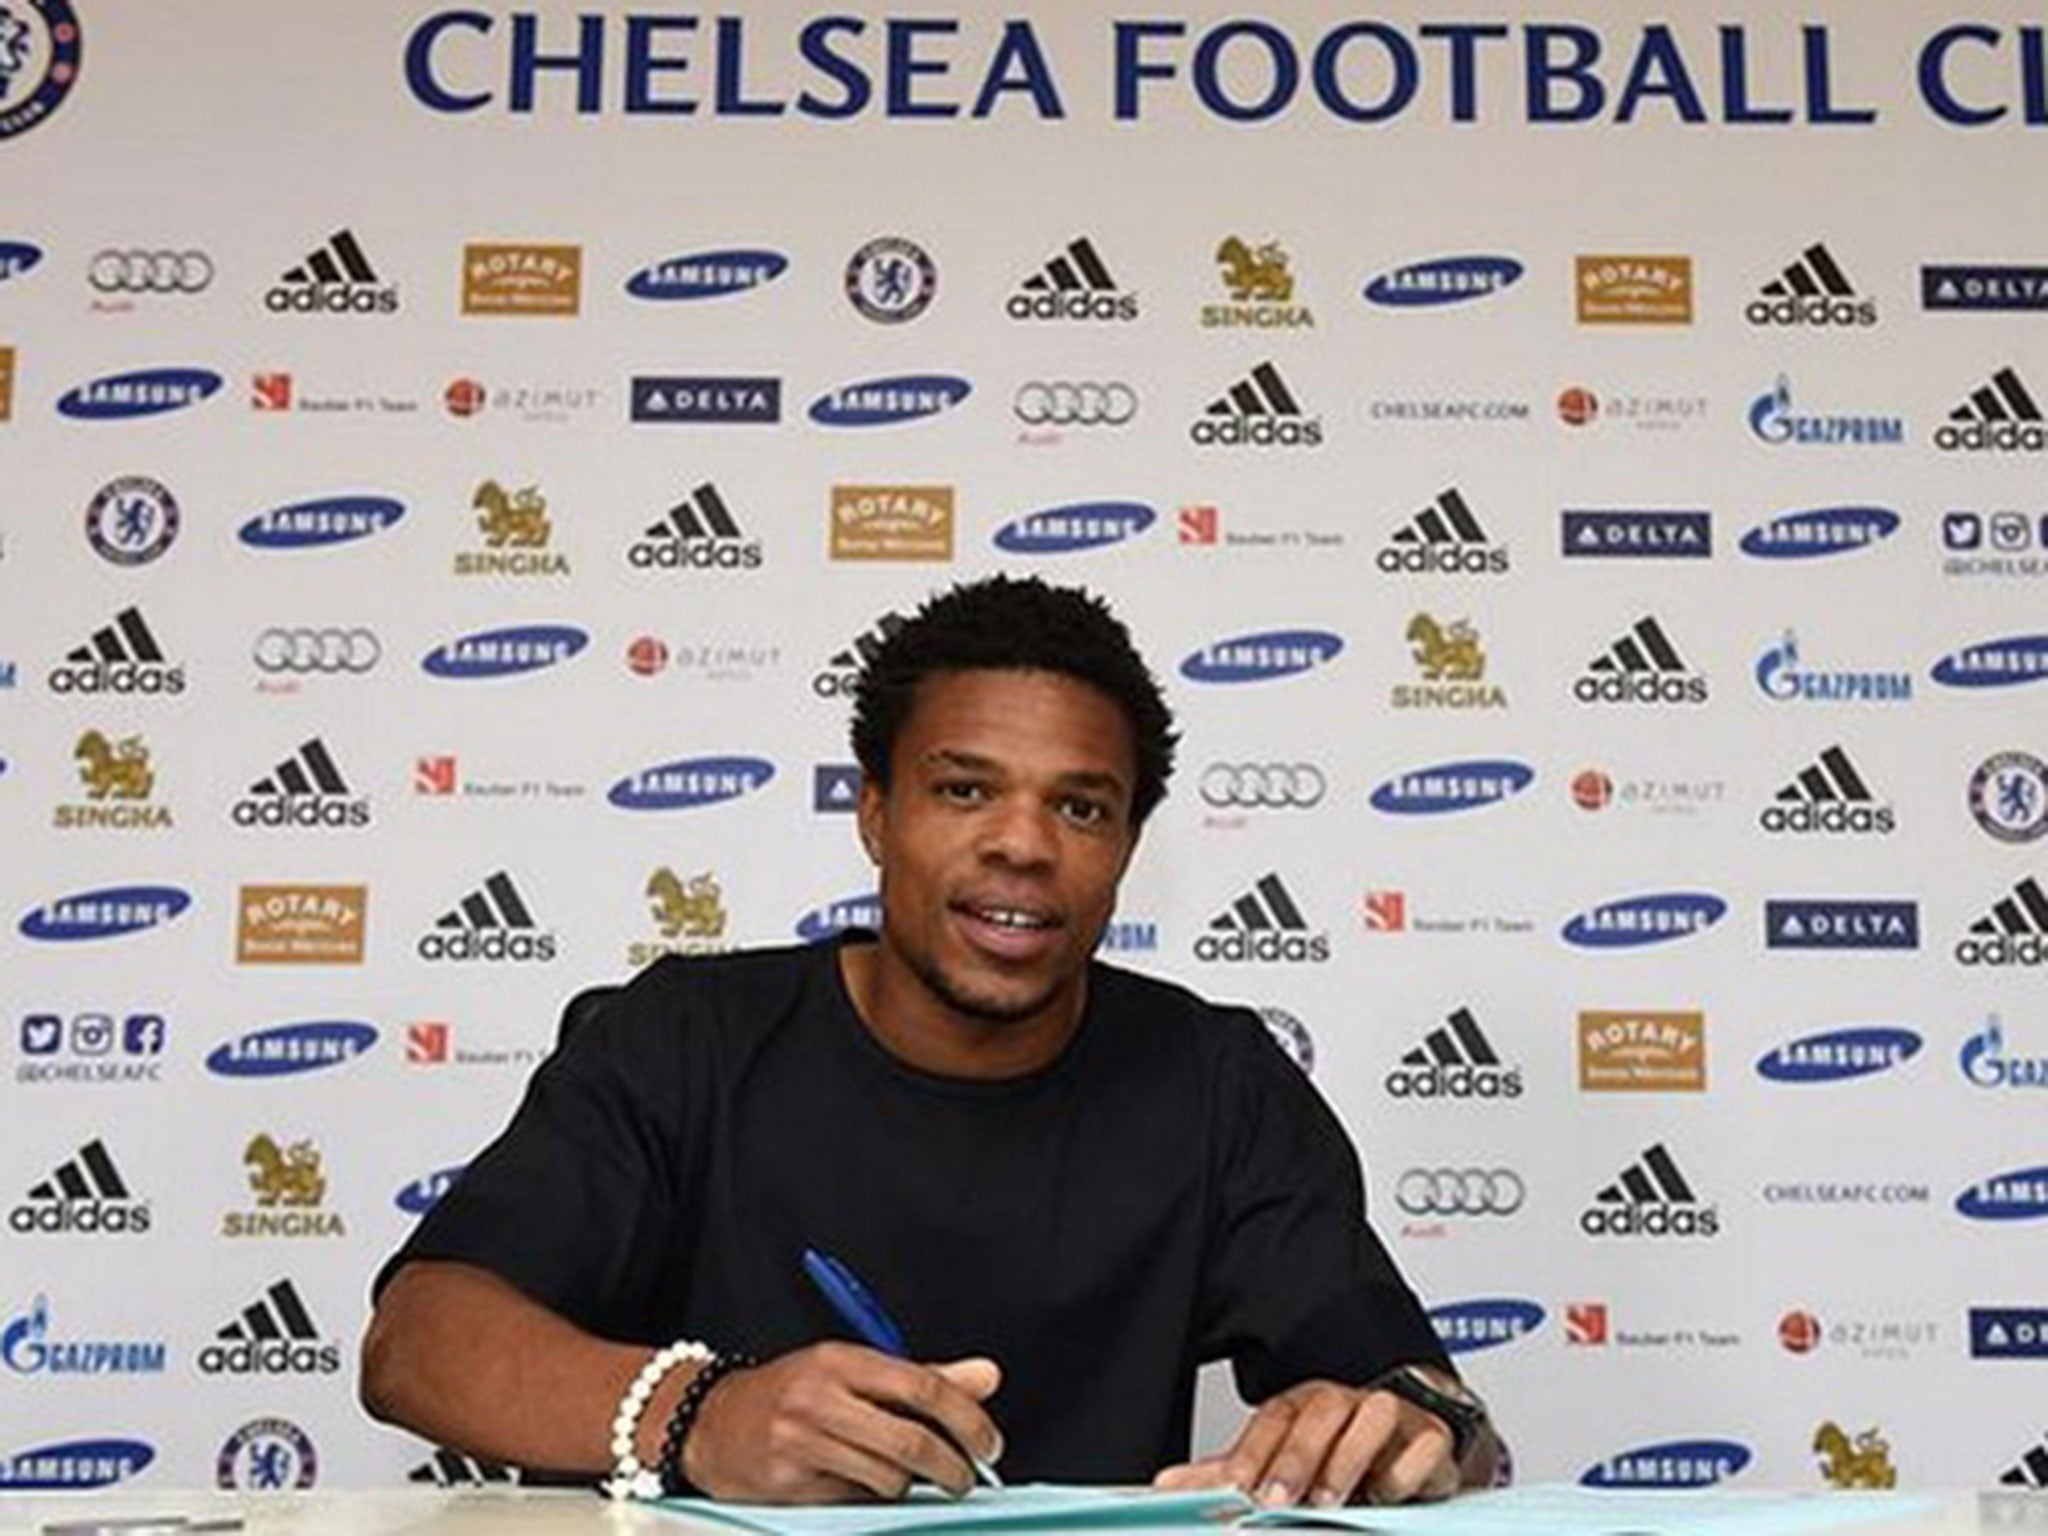 Remy Chelsea Wallpaper Loic Remy Joins Chelsea